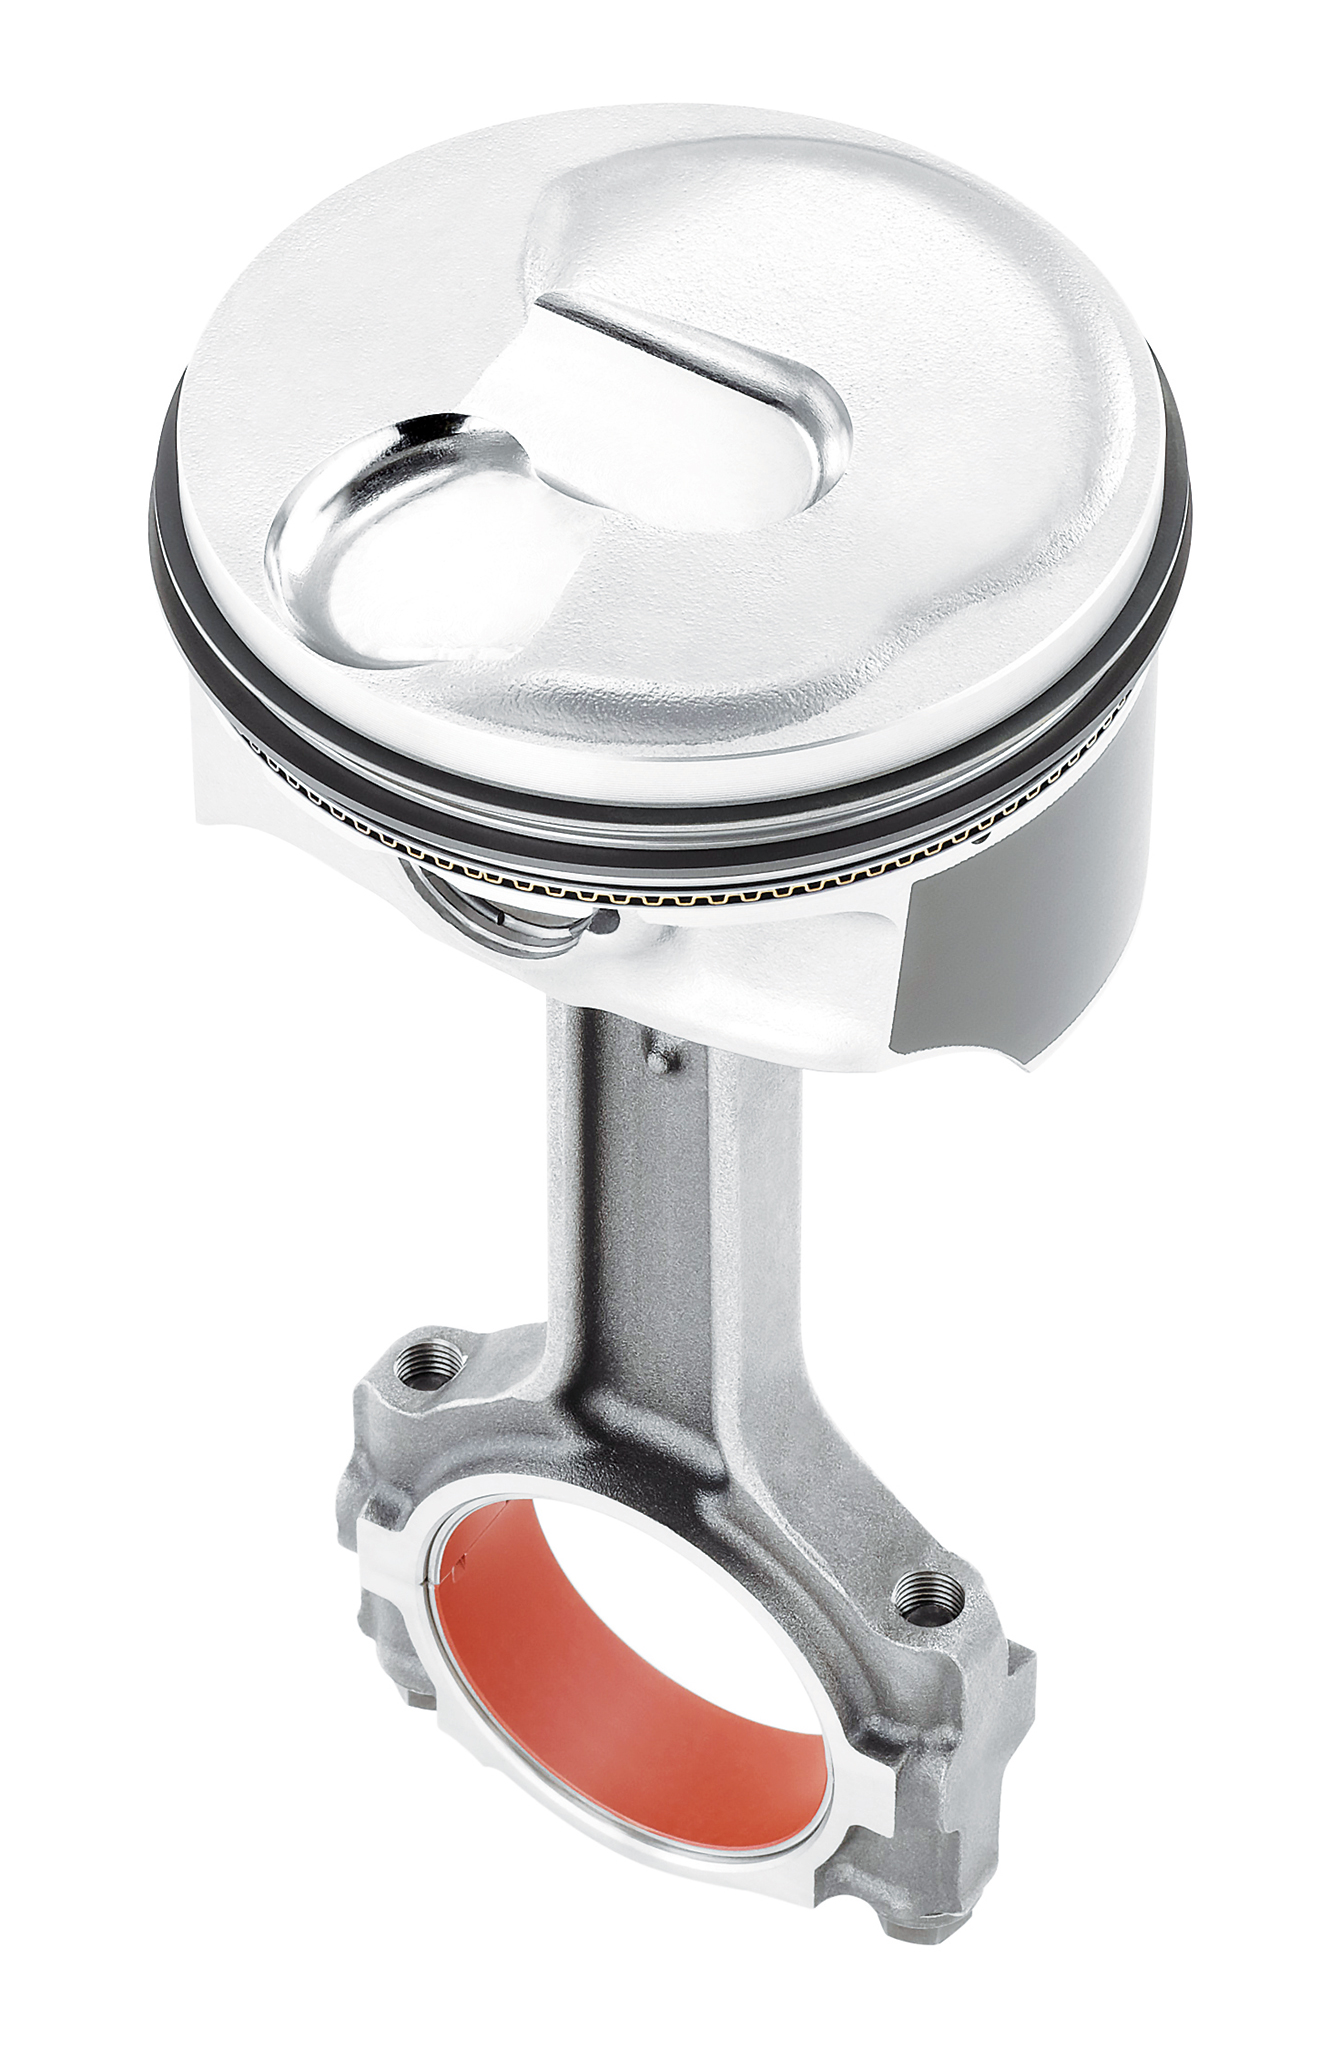 This piston top is likely to shape the future of combustion. This is a direct-injection Chevrolet LT1 engine piston that appears to create a pre-chamber for the fuel to initiate combustion.